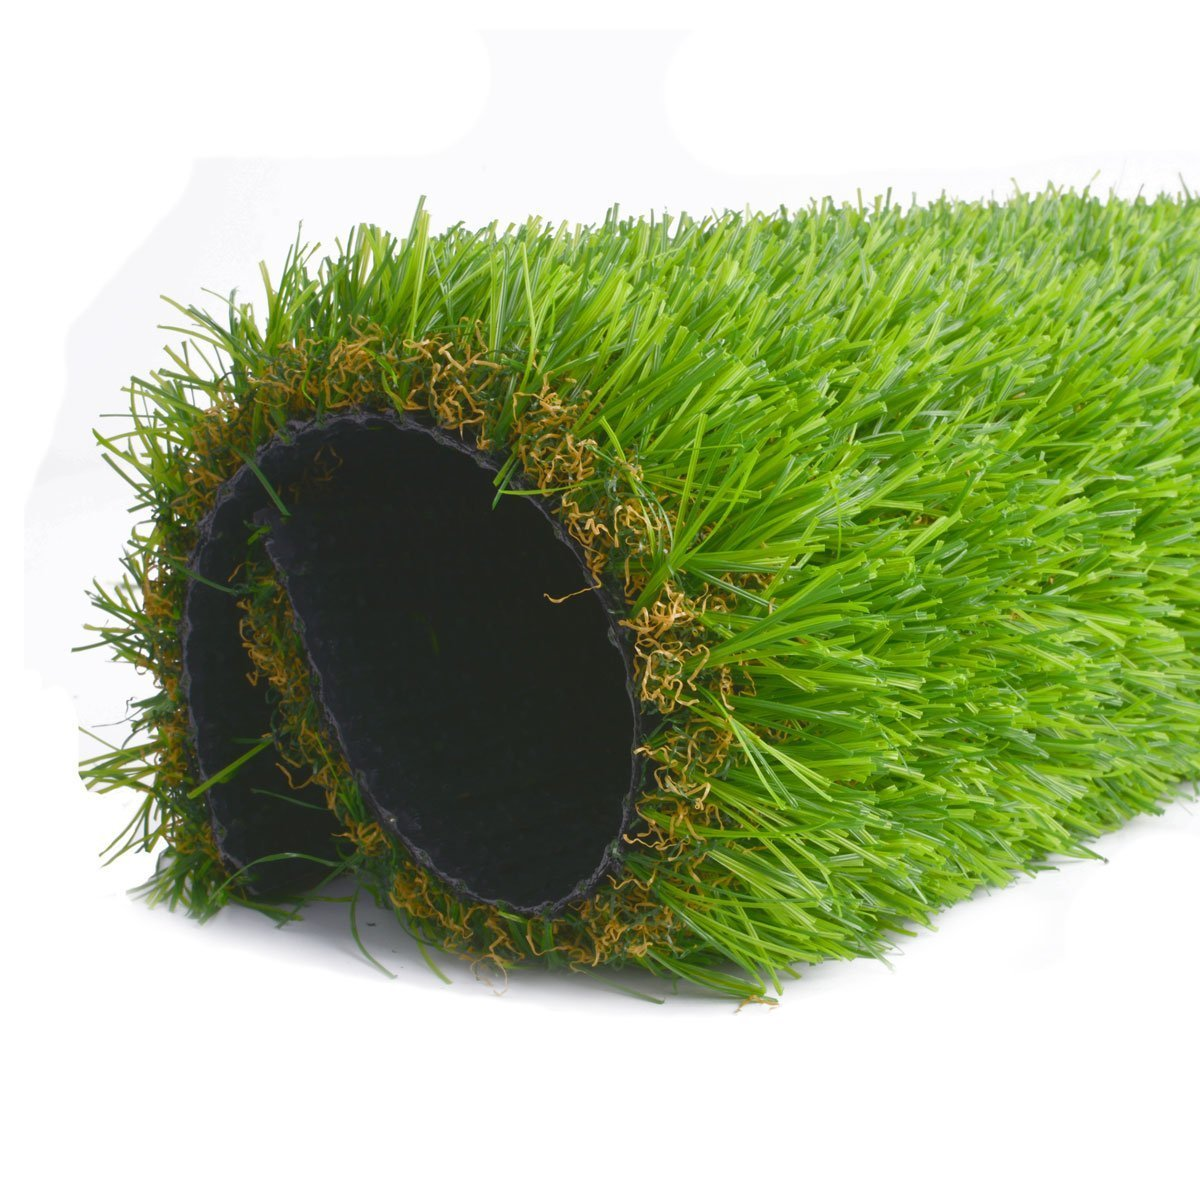 Synthetic Turf Artificial Lawn Grass Indoor Outdoor Premium Realistic Landscape (6.5 ft X 13 ft = 84.5 sqf)